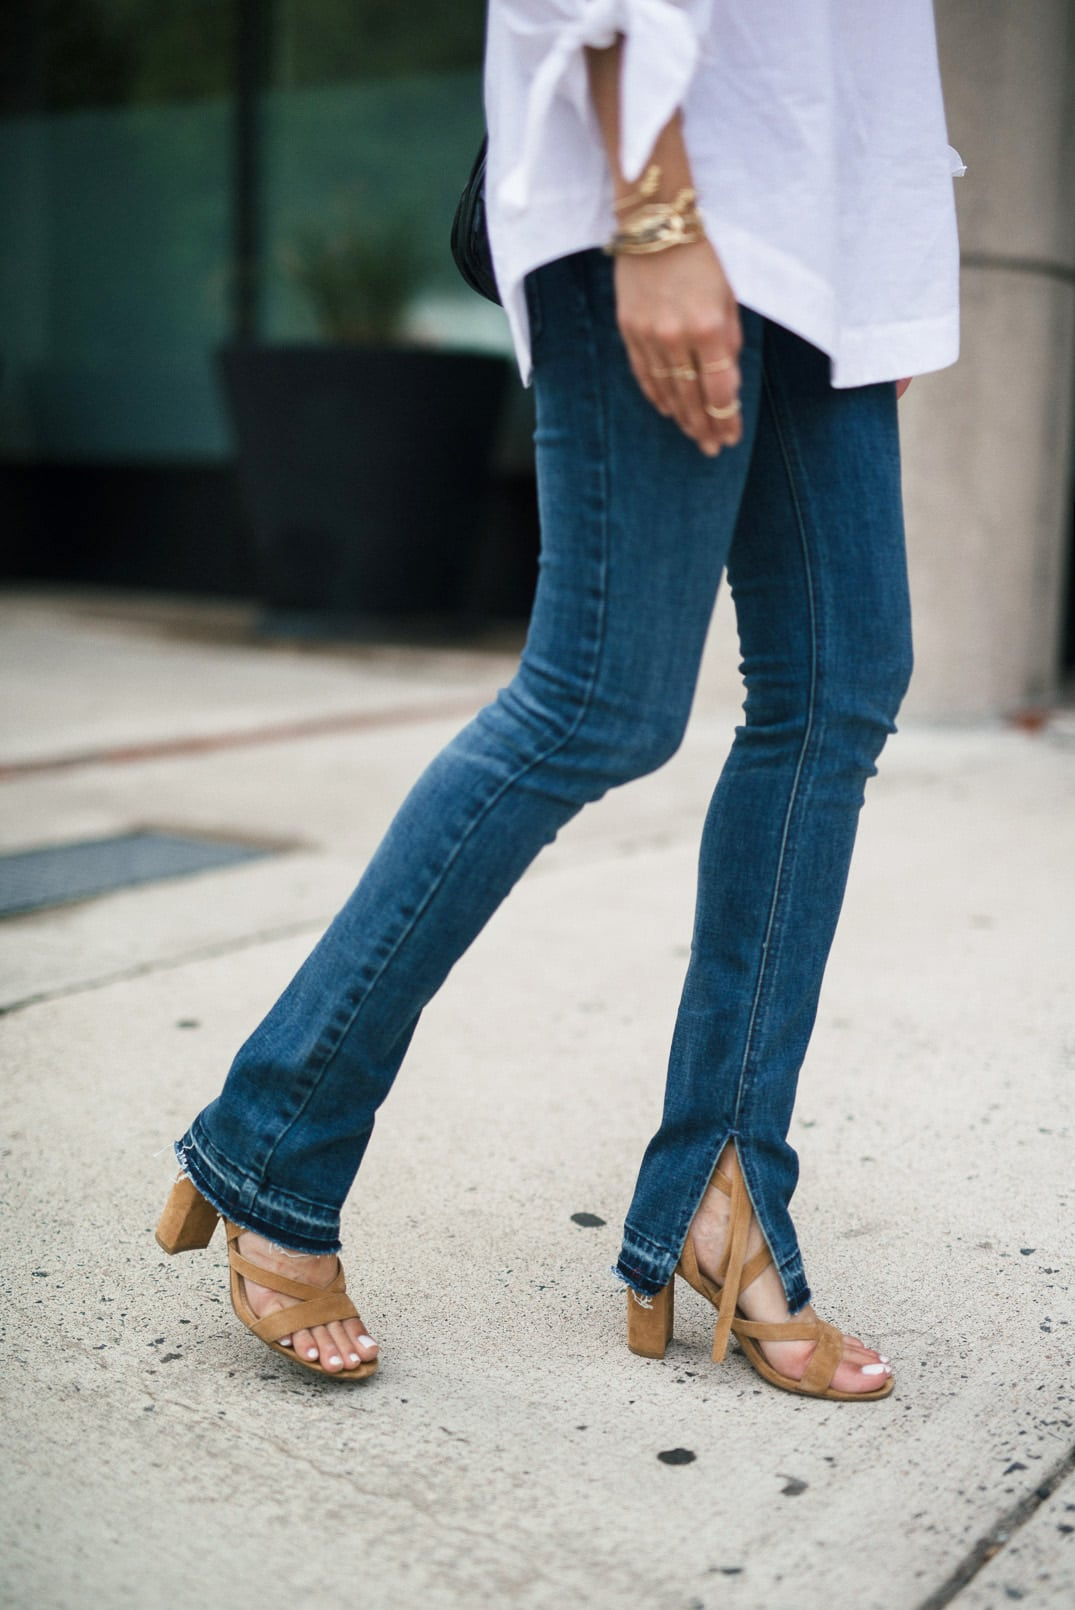 Free People Off-the-shoulder top, Raw Hem Jeans | The Girl From Panama